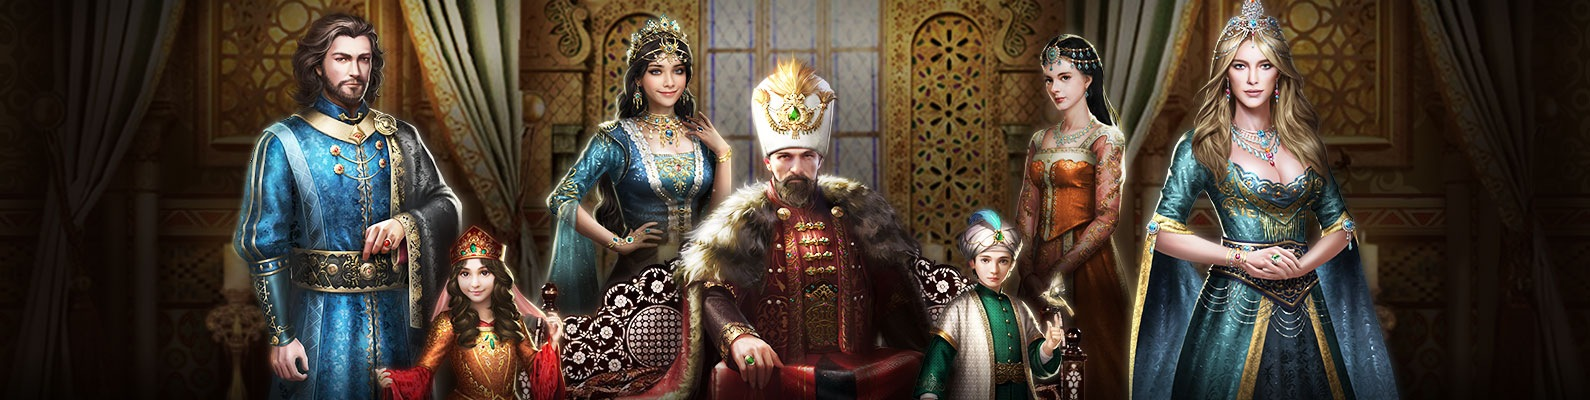 """The great Sultan"": the historical game with the most aggressive advertising in social networks"